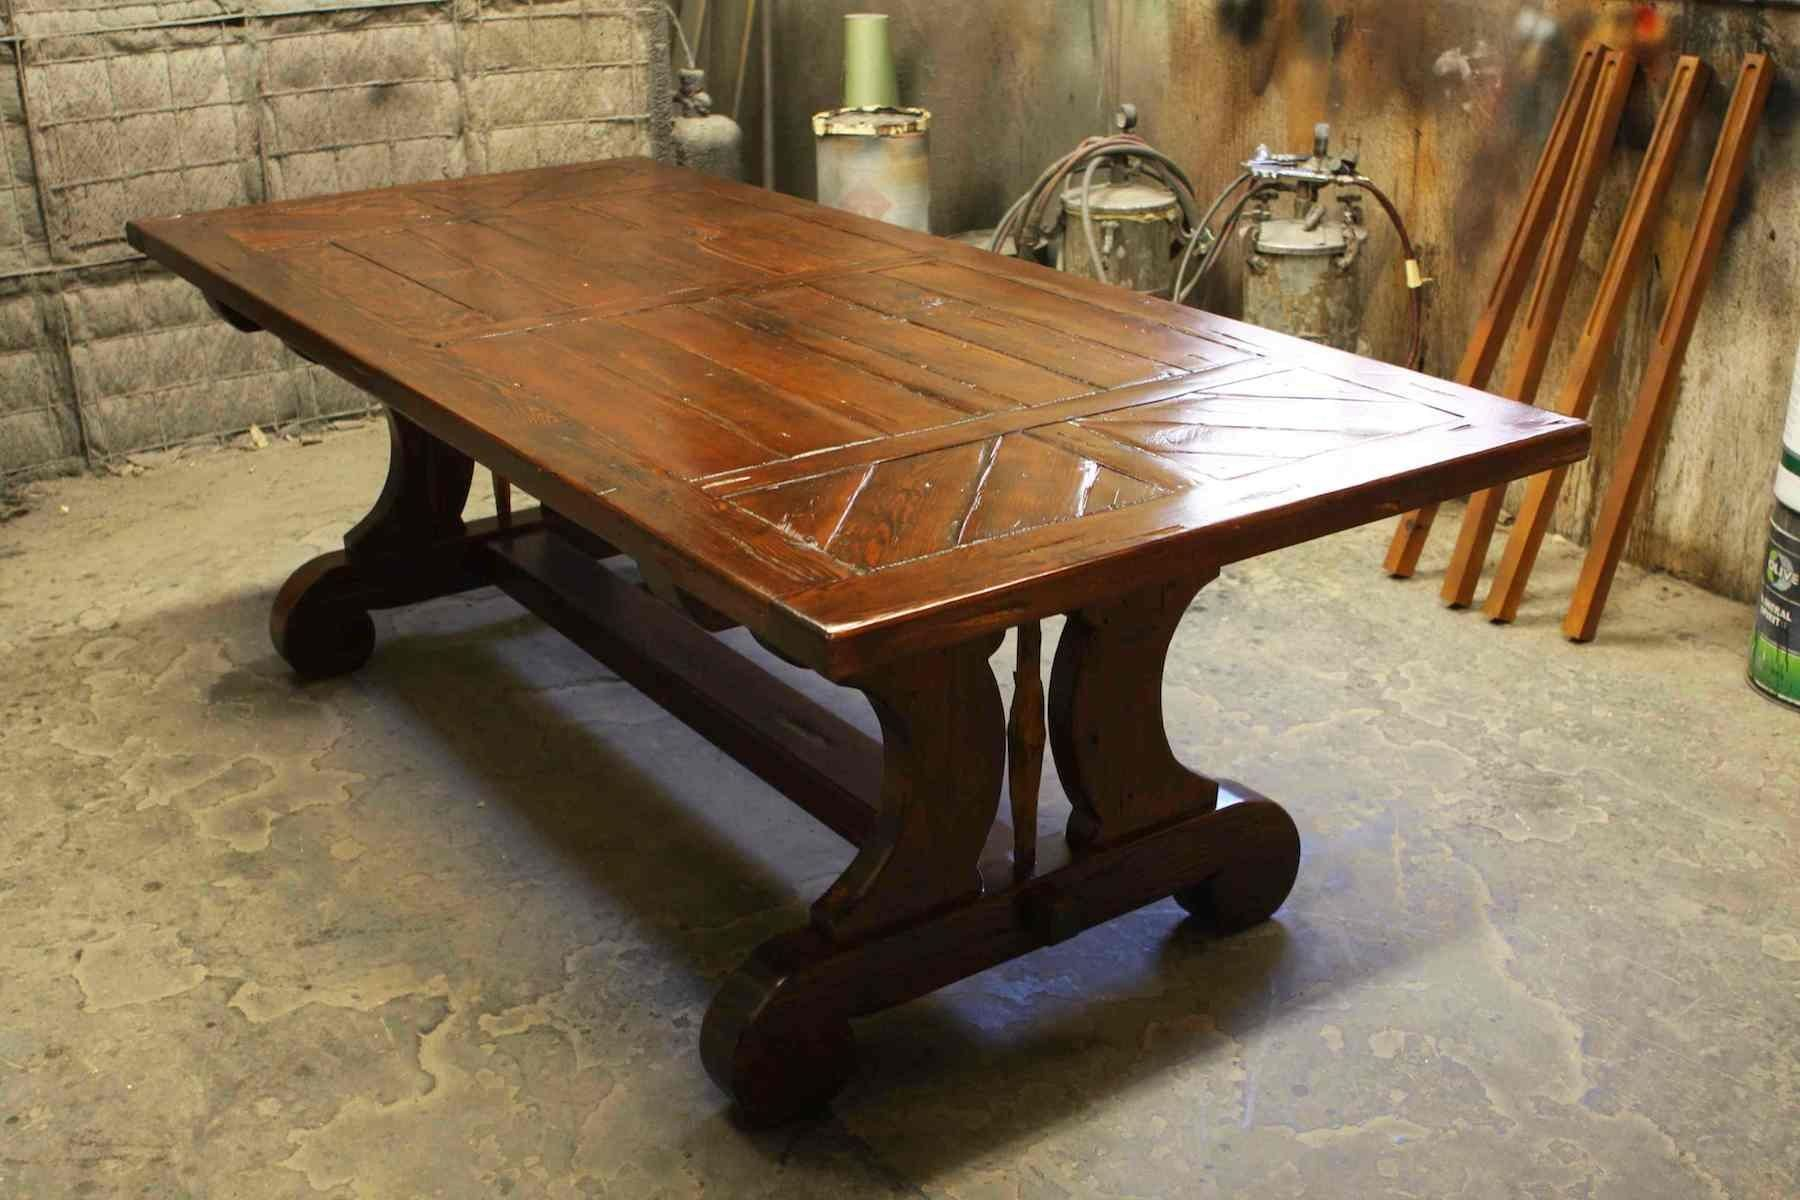 Hand Crafted Custom Trestle Dining Table With Leaf Extensions Built In Reclaimed Wood By Mortise Tenon Furniture